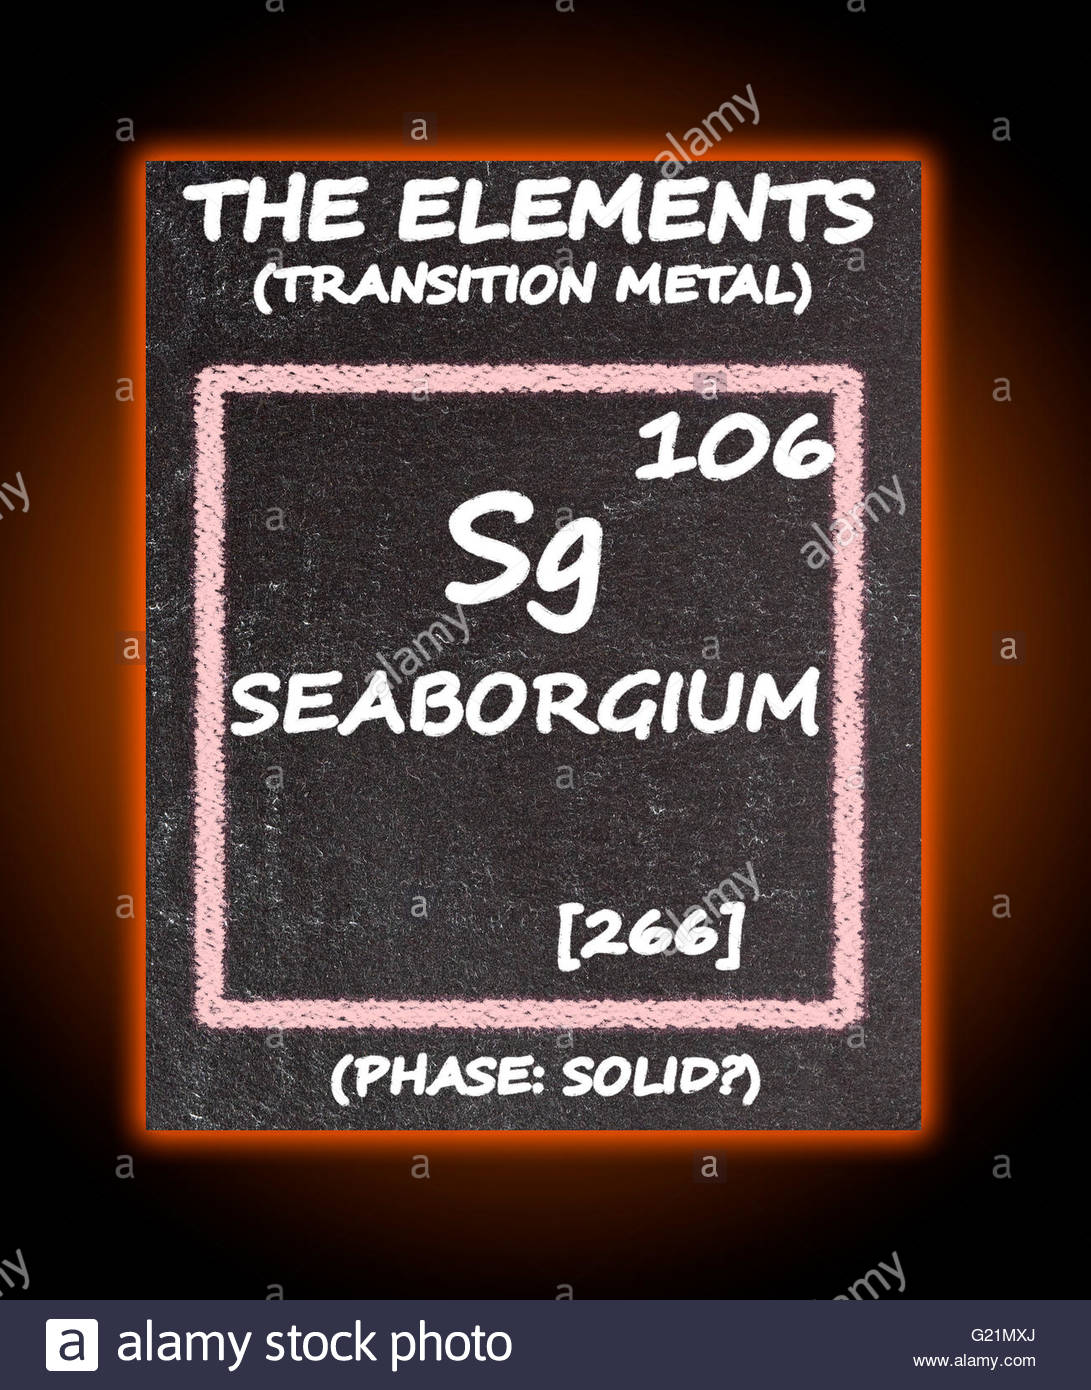 Seaborgium Details From Periodic Table Stock Photos Seaborgium